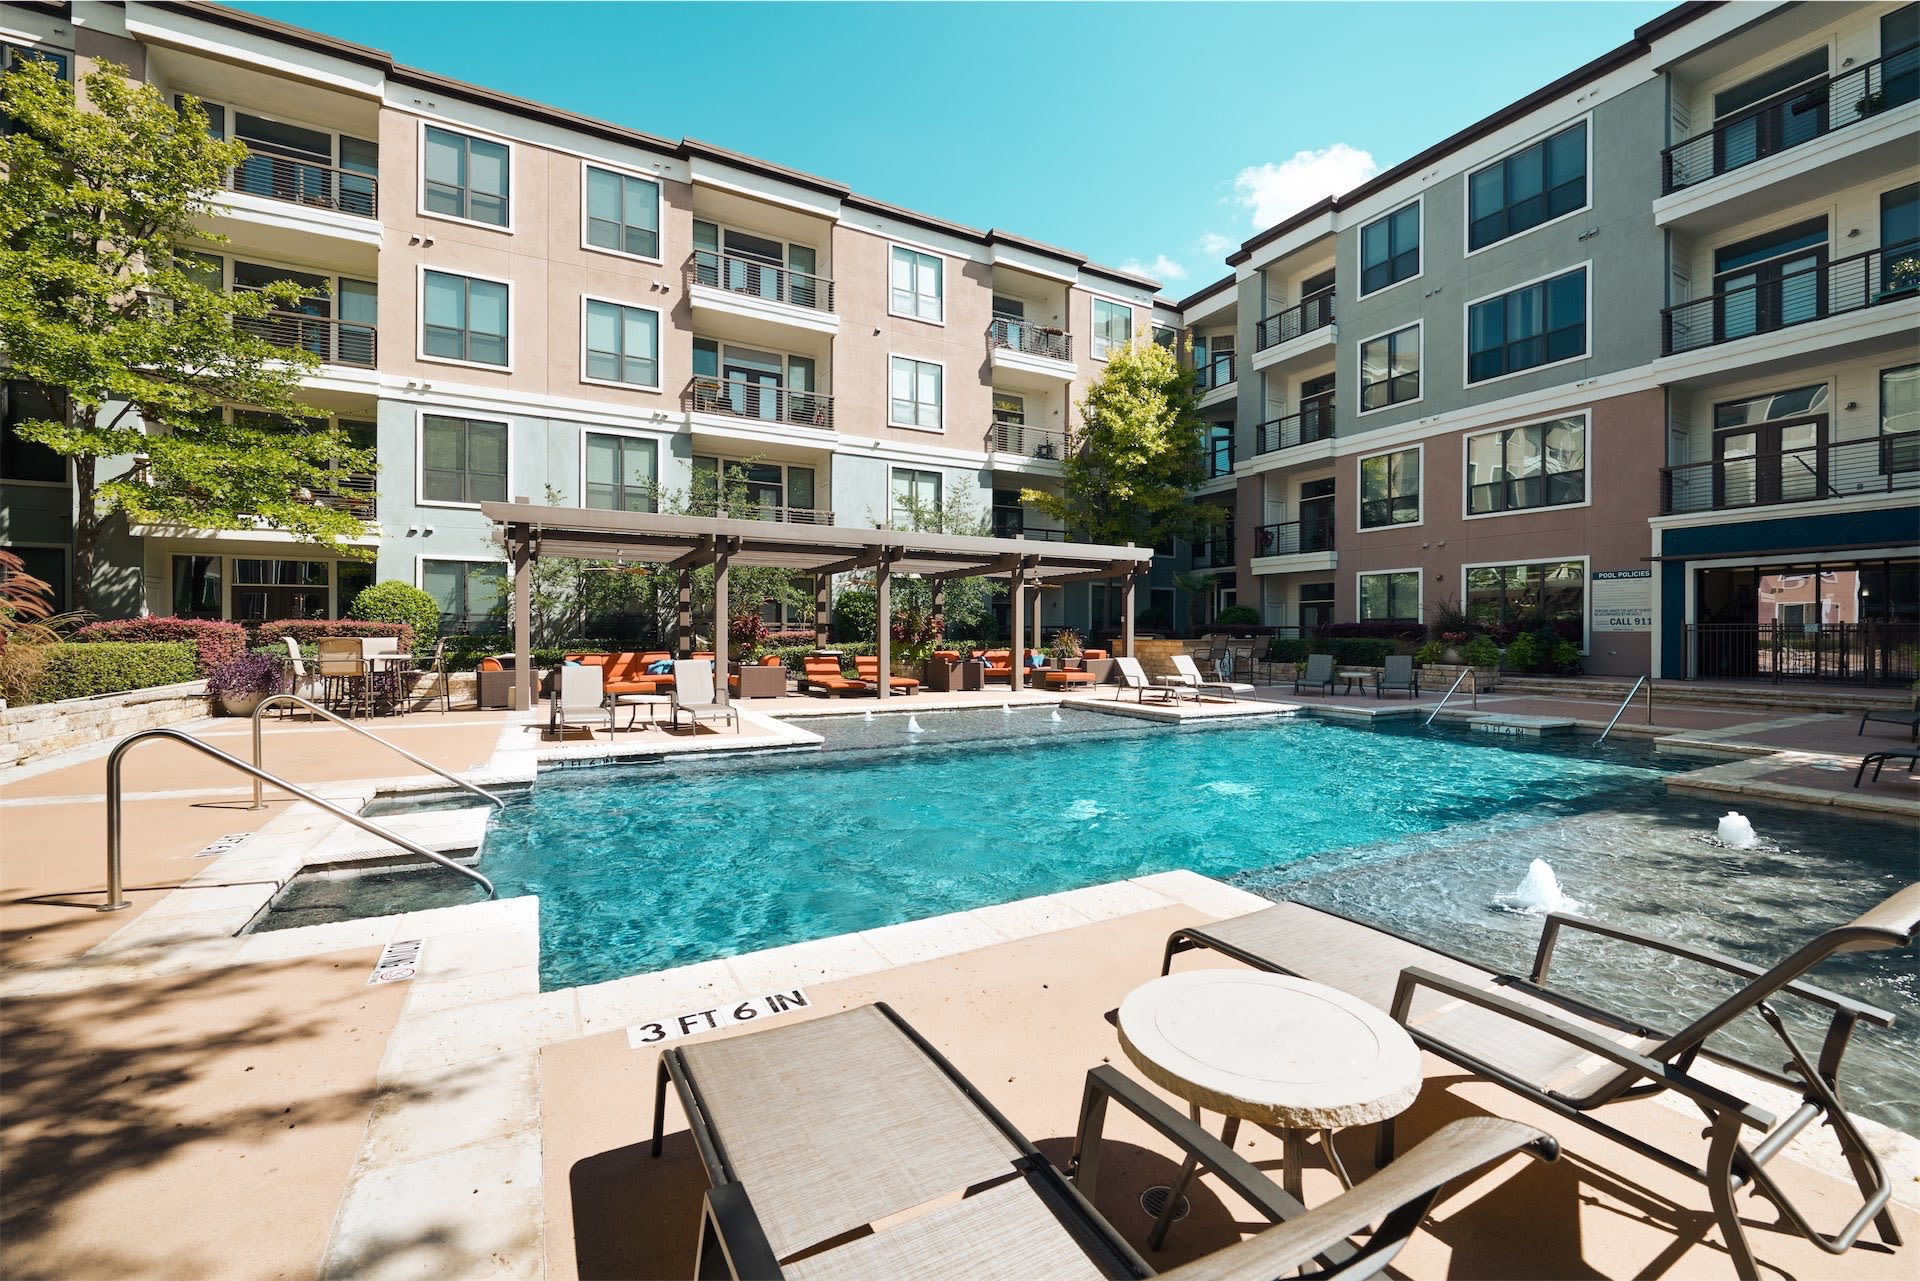 Sun bathing chairs to lounge in by the pool at Seville Uptown in Dallas, Texas